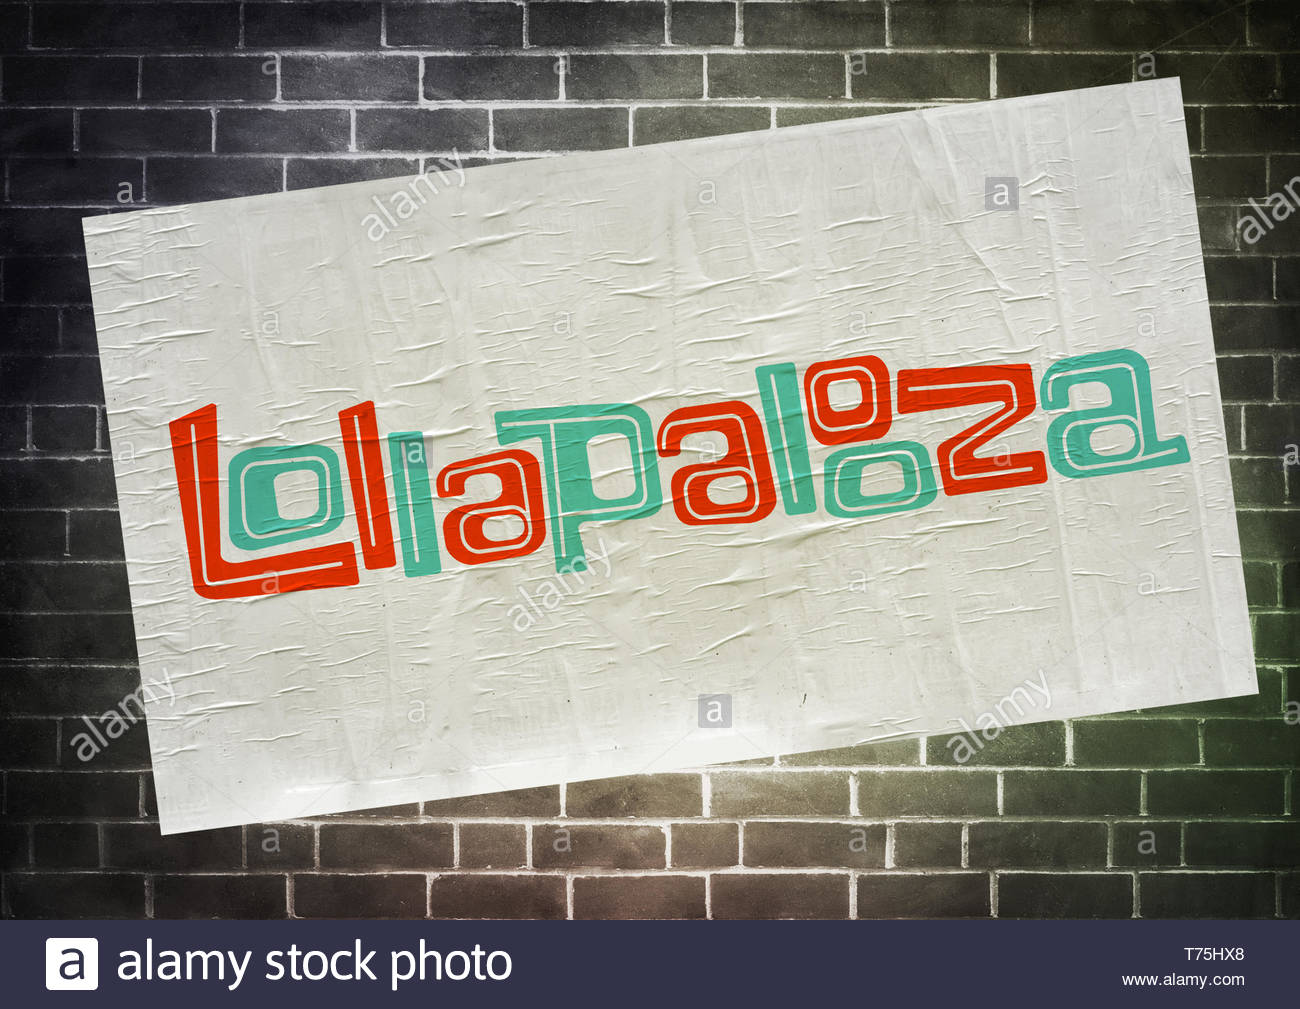 Lollapalooza music festival poster - Stock Image